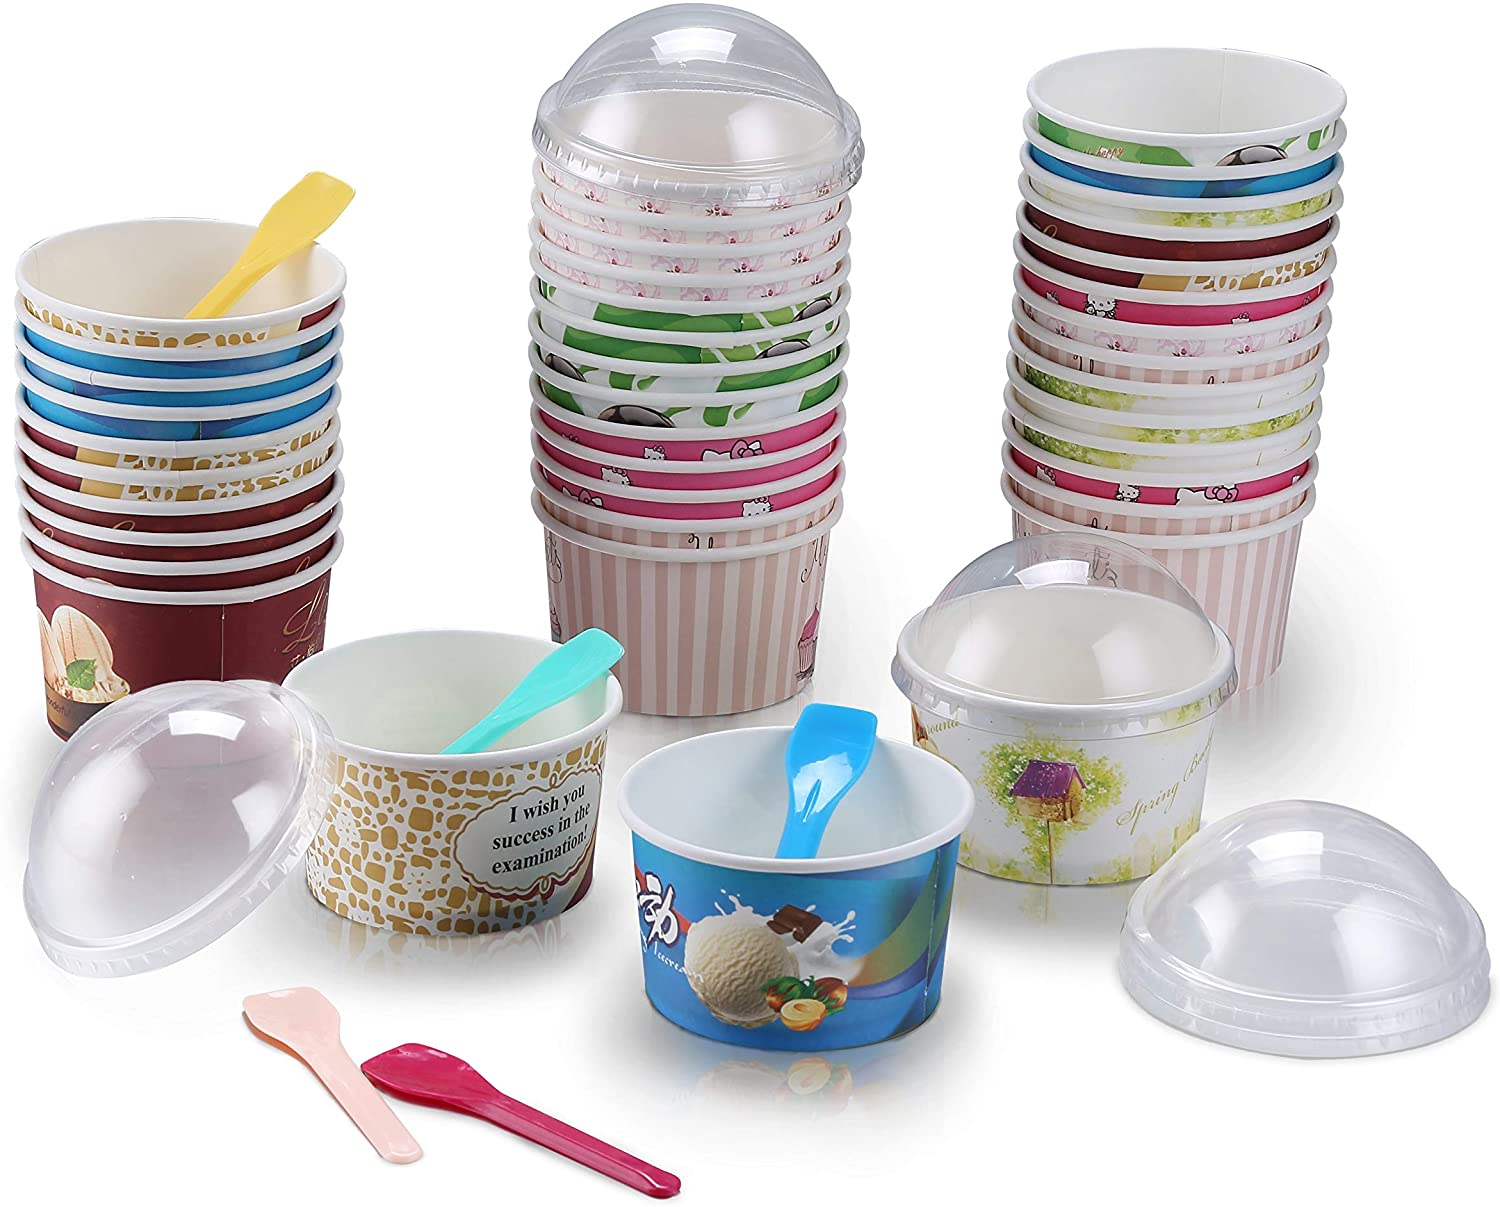 Ice Cream Cups, Cup Lids & Spoon Set (100 Counts Each) - Sundae Bowls 12 oz Unique Design - Leak-Free Disposable Icecream Paper Bowl Cup & Accessories for Any Occasion (Eco-Friendly)